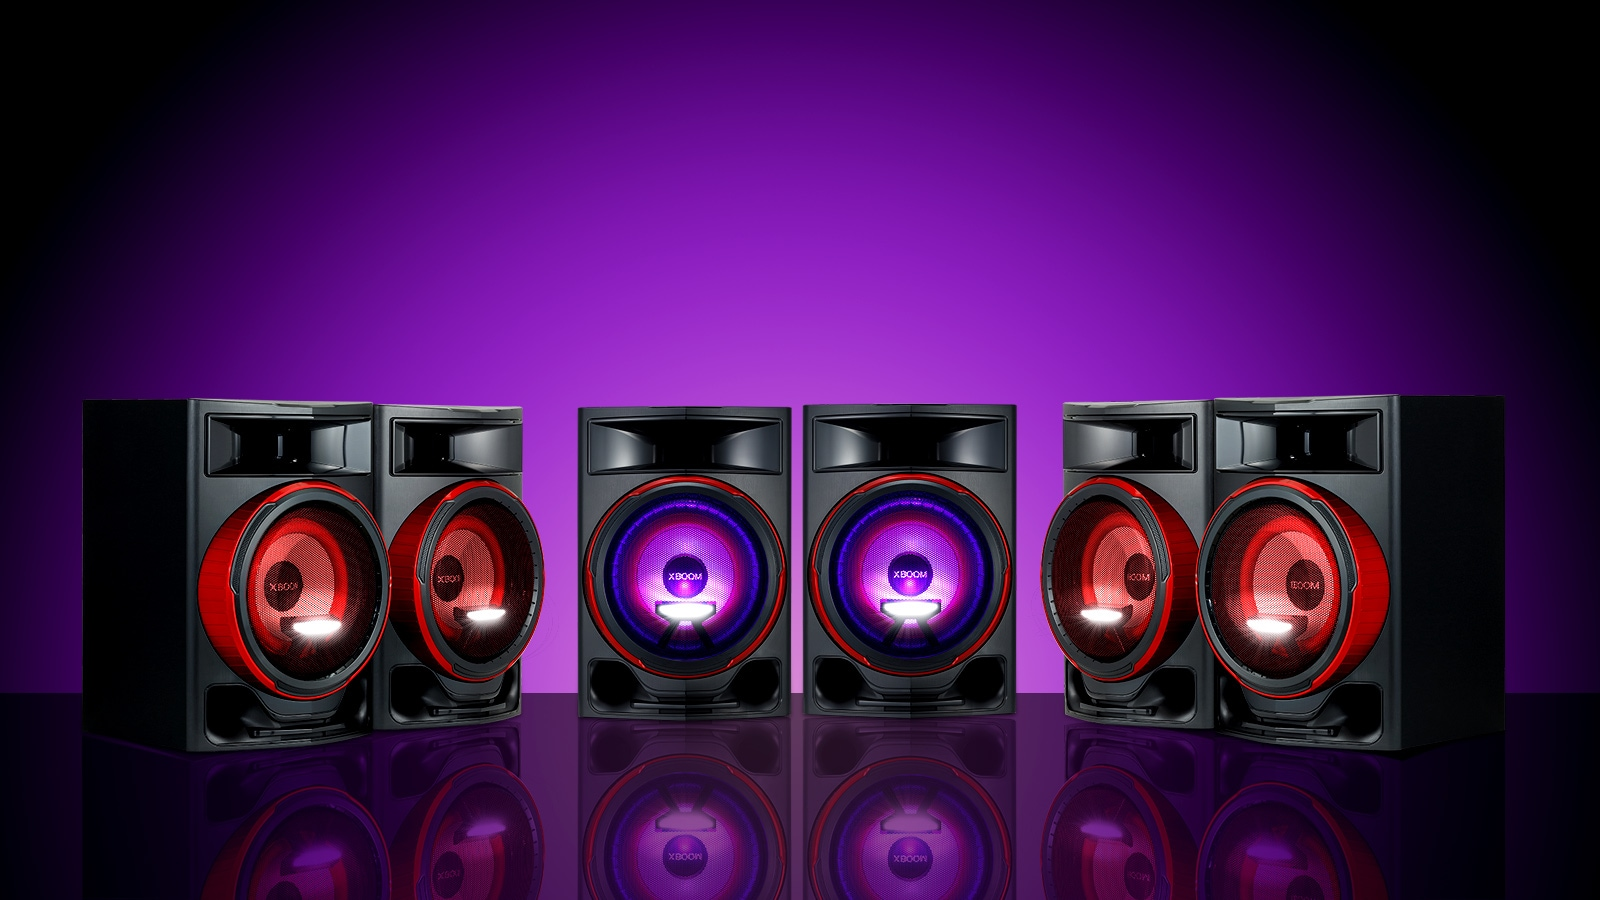 CAV-MiniAudio-CL87-02-Multi-Color-Lighting-Desktop